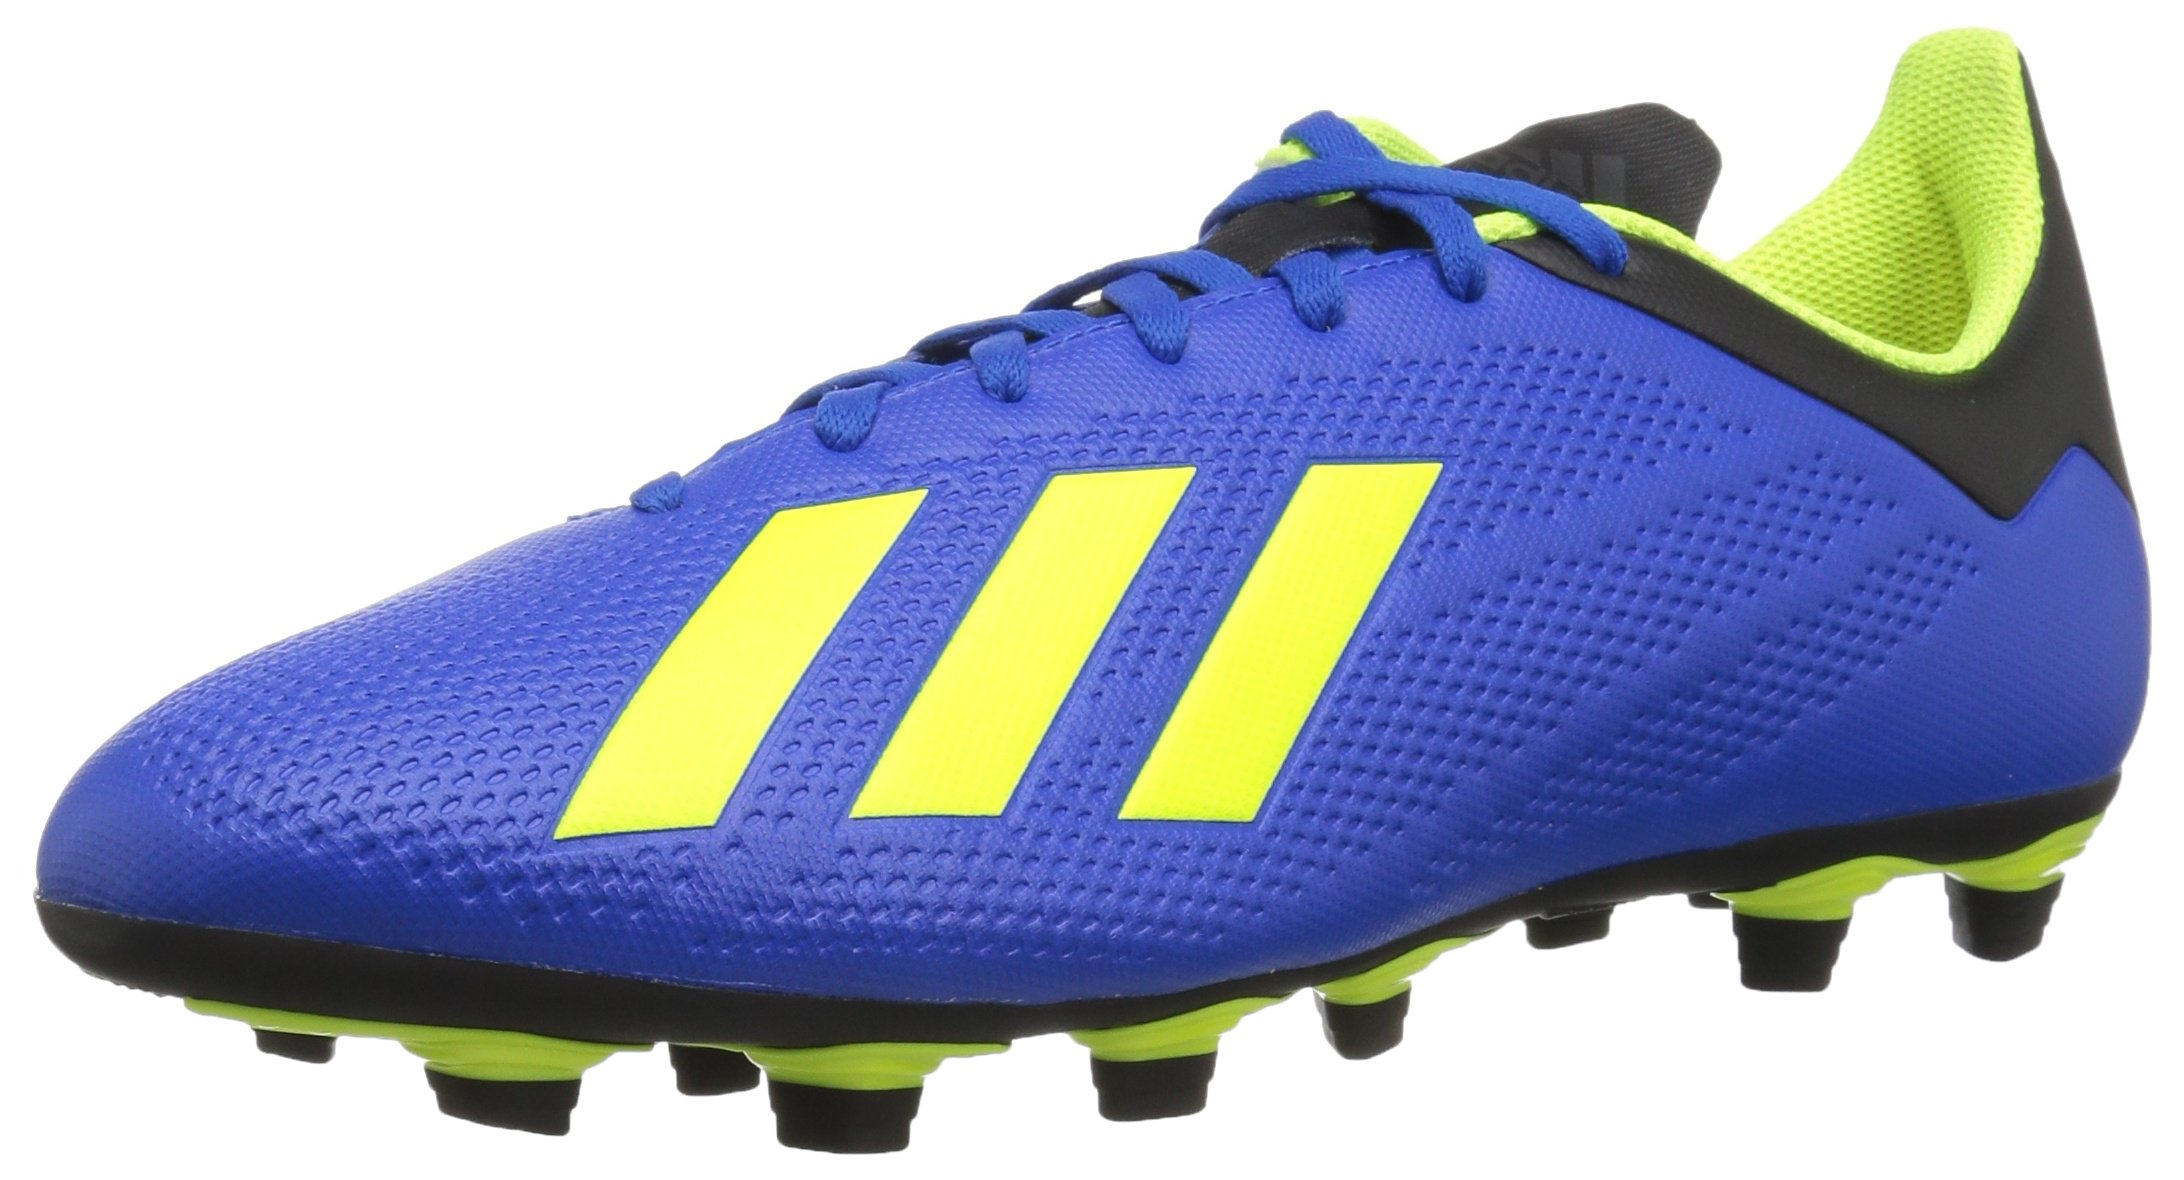 adidas Men's X 18.4 Firm Ground Soccer Shoe, Football Blue/Solar Yellow/Black, 9.5 M US by adidas